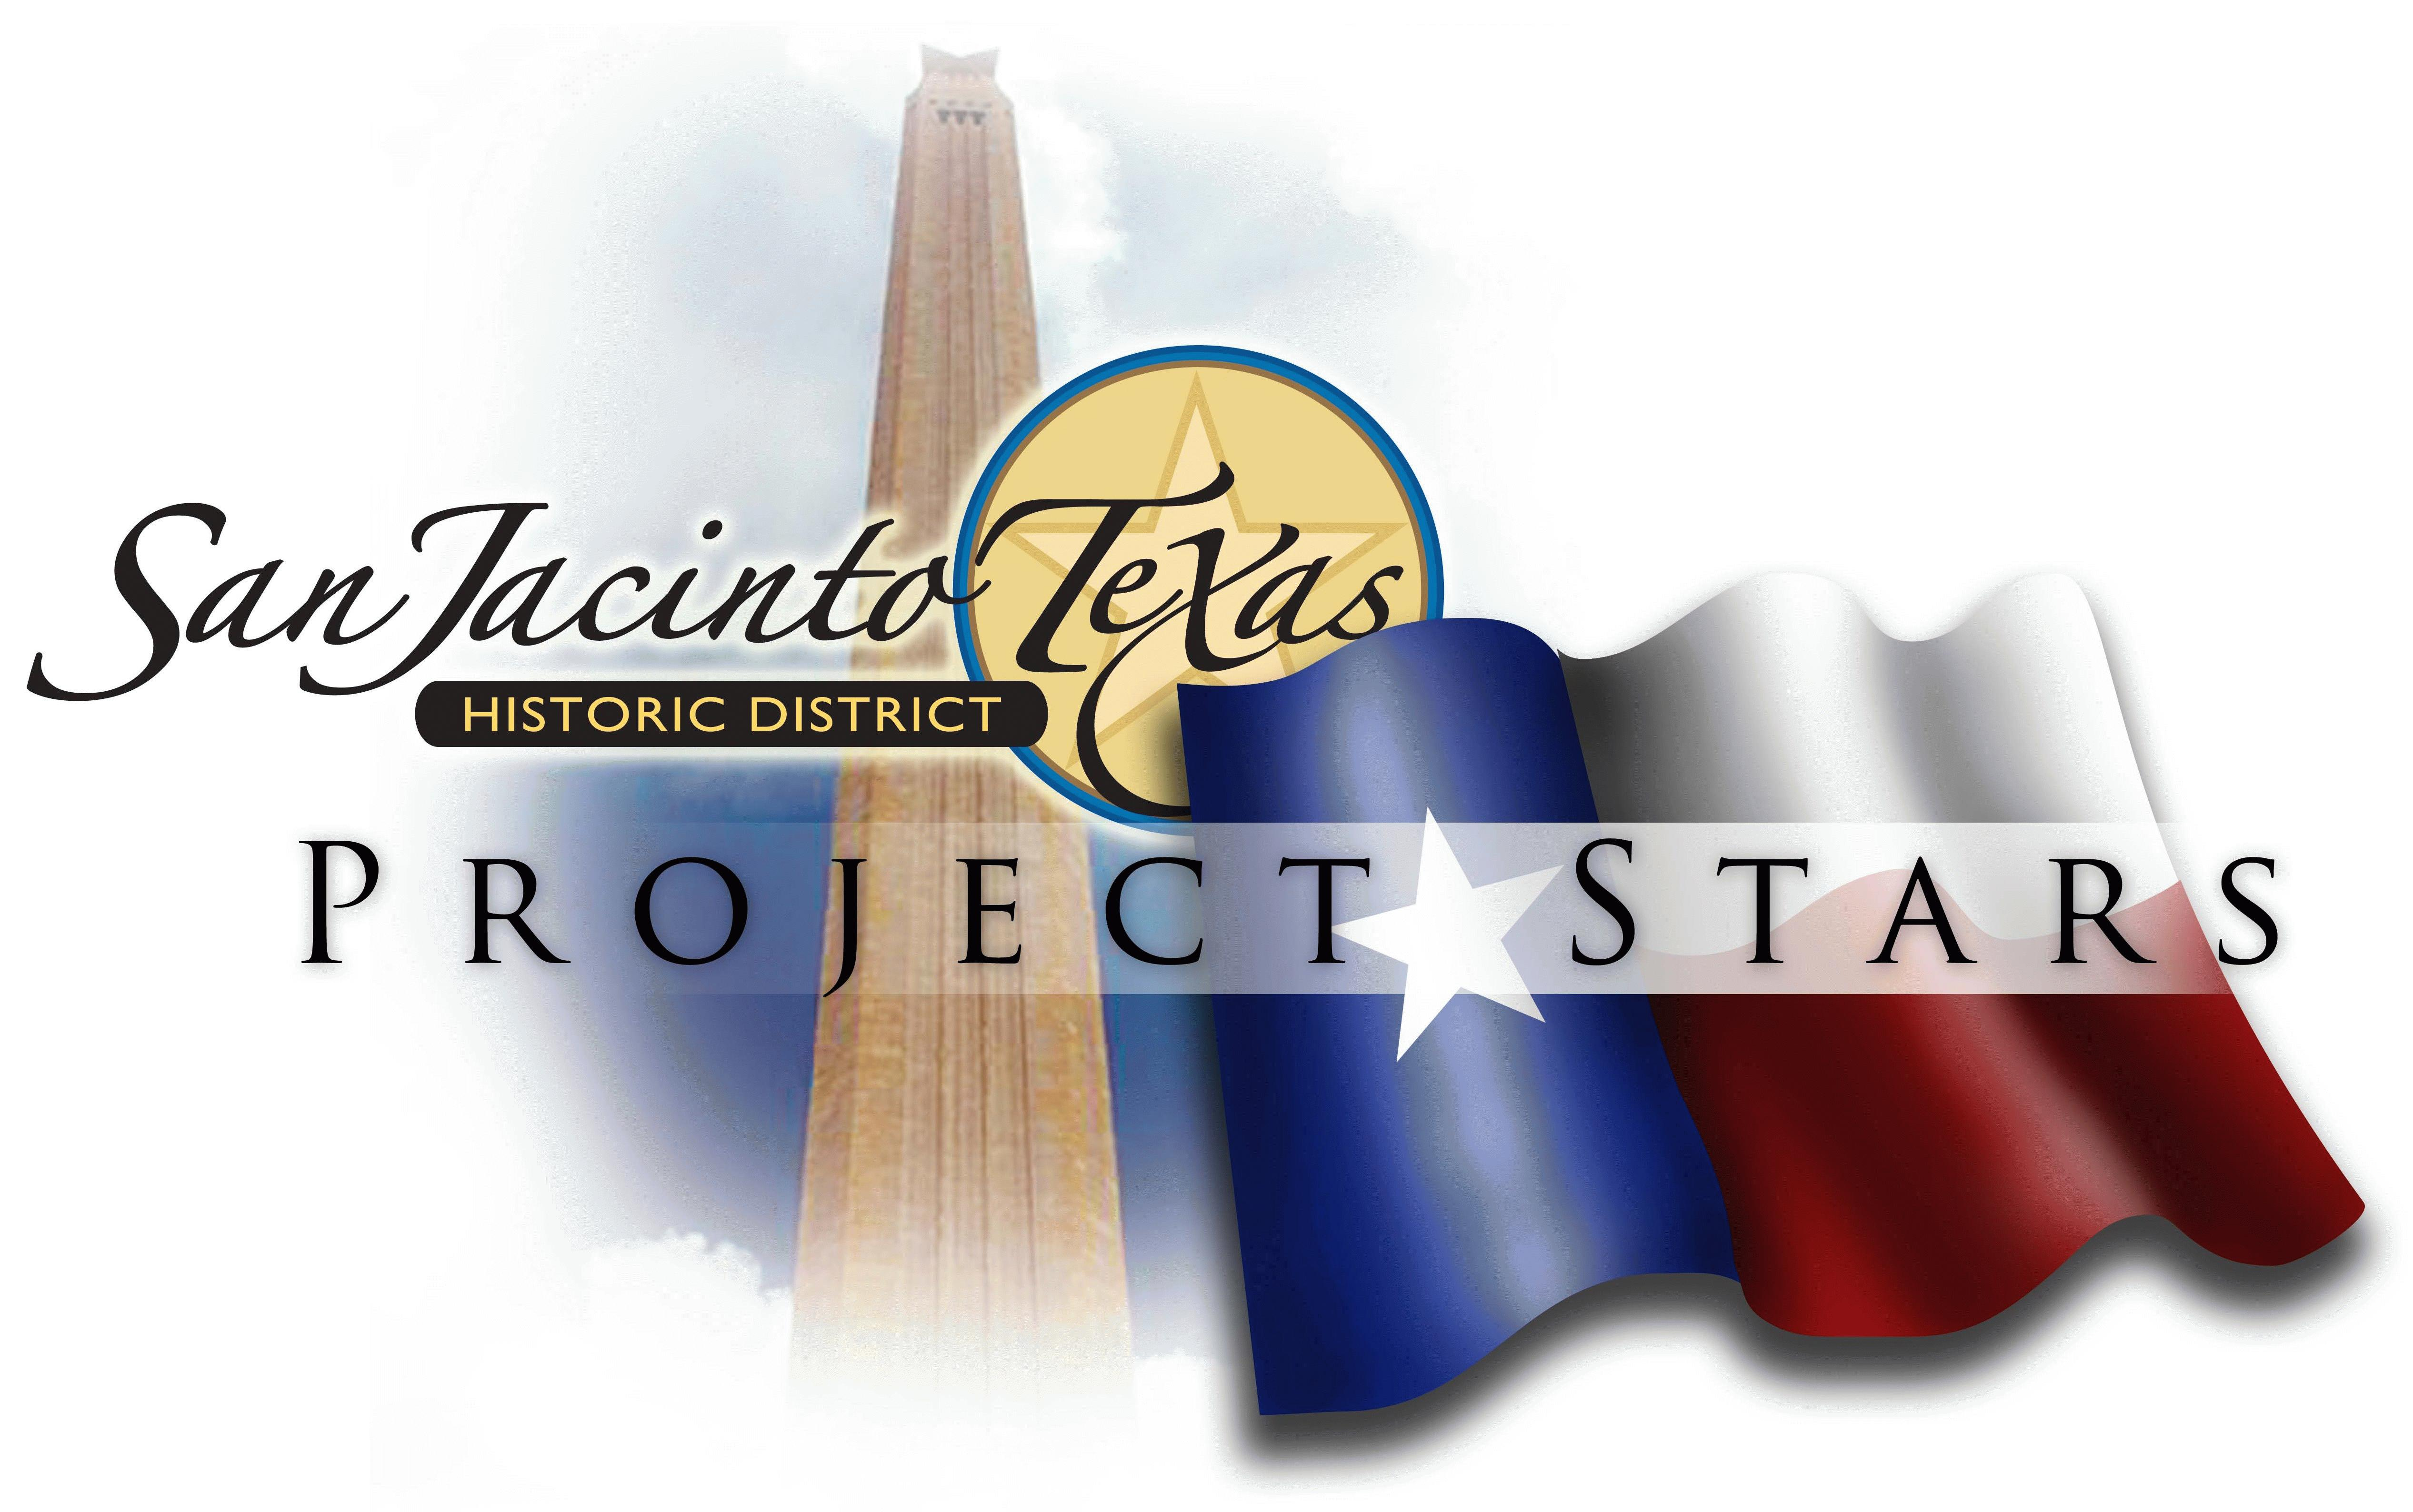 San Jacinto Texas Historic District